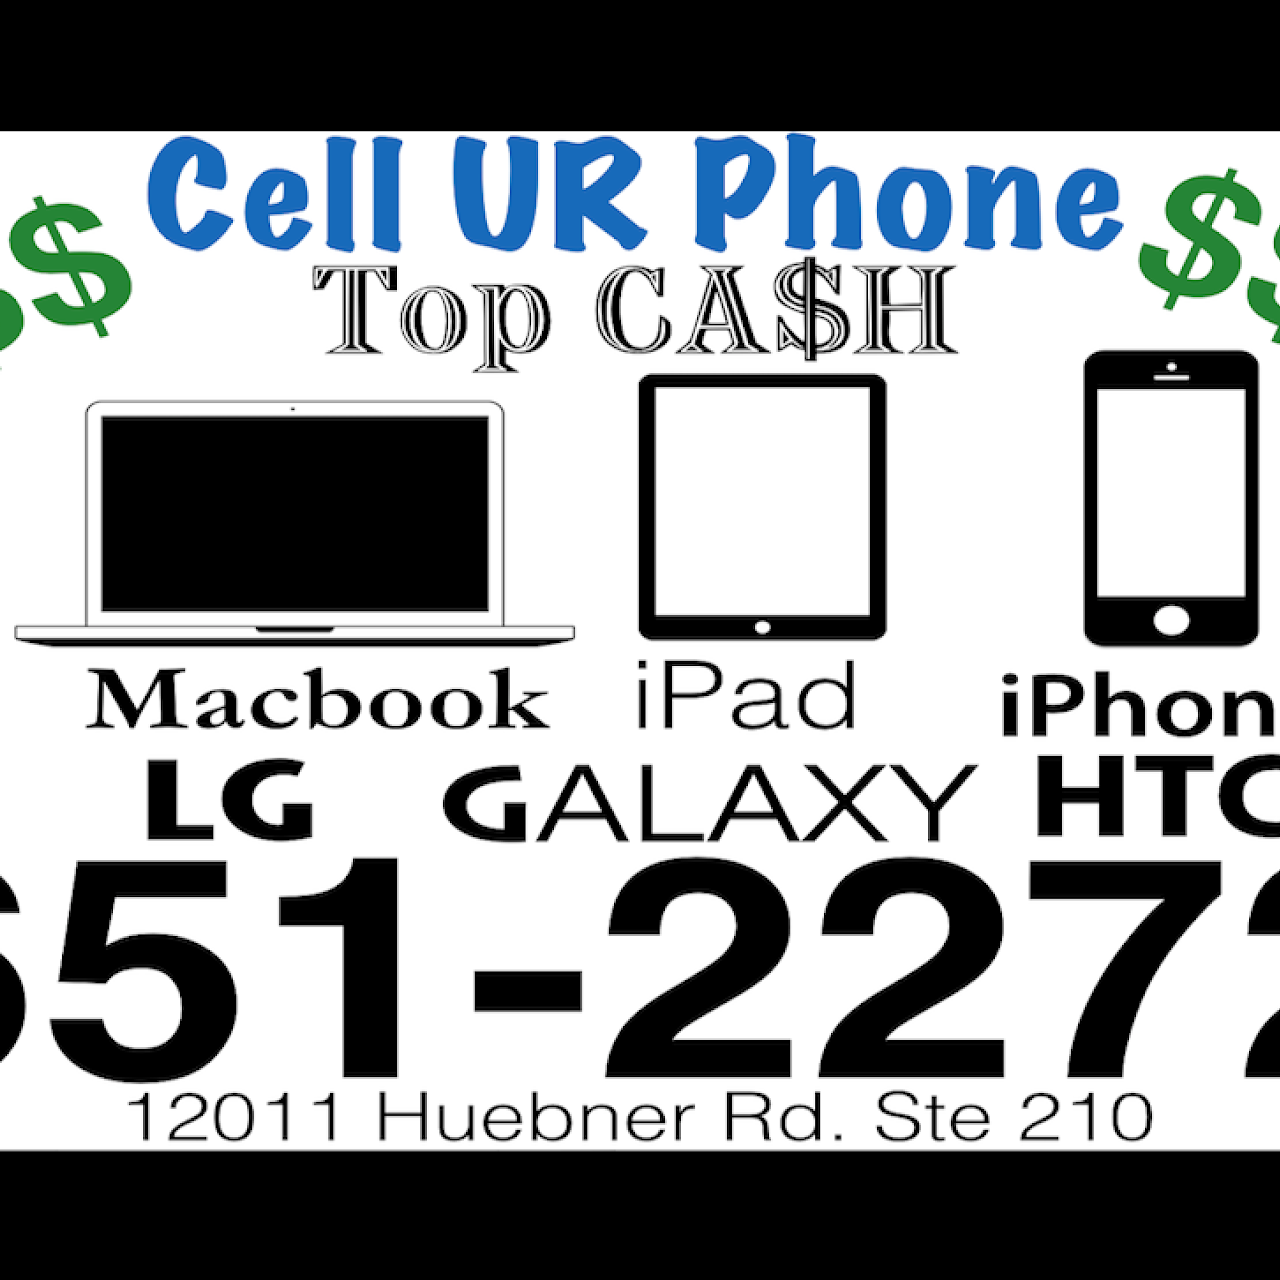 u Cell i BuyBack iPhone Buy-Sell Shop - Cell Phone Buyback Store in ...